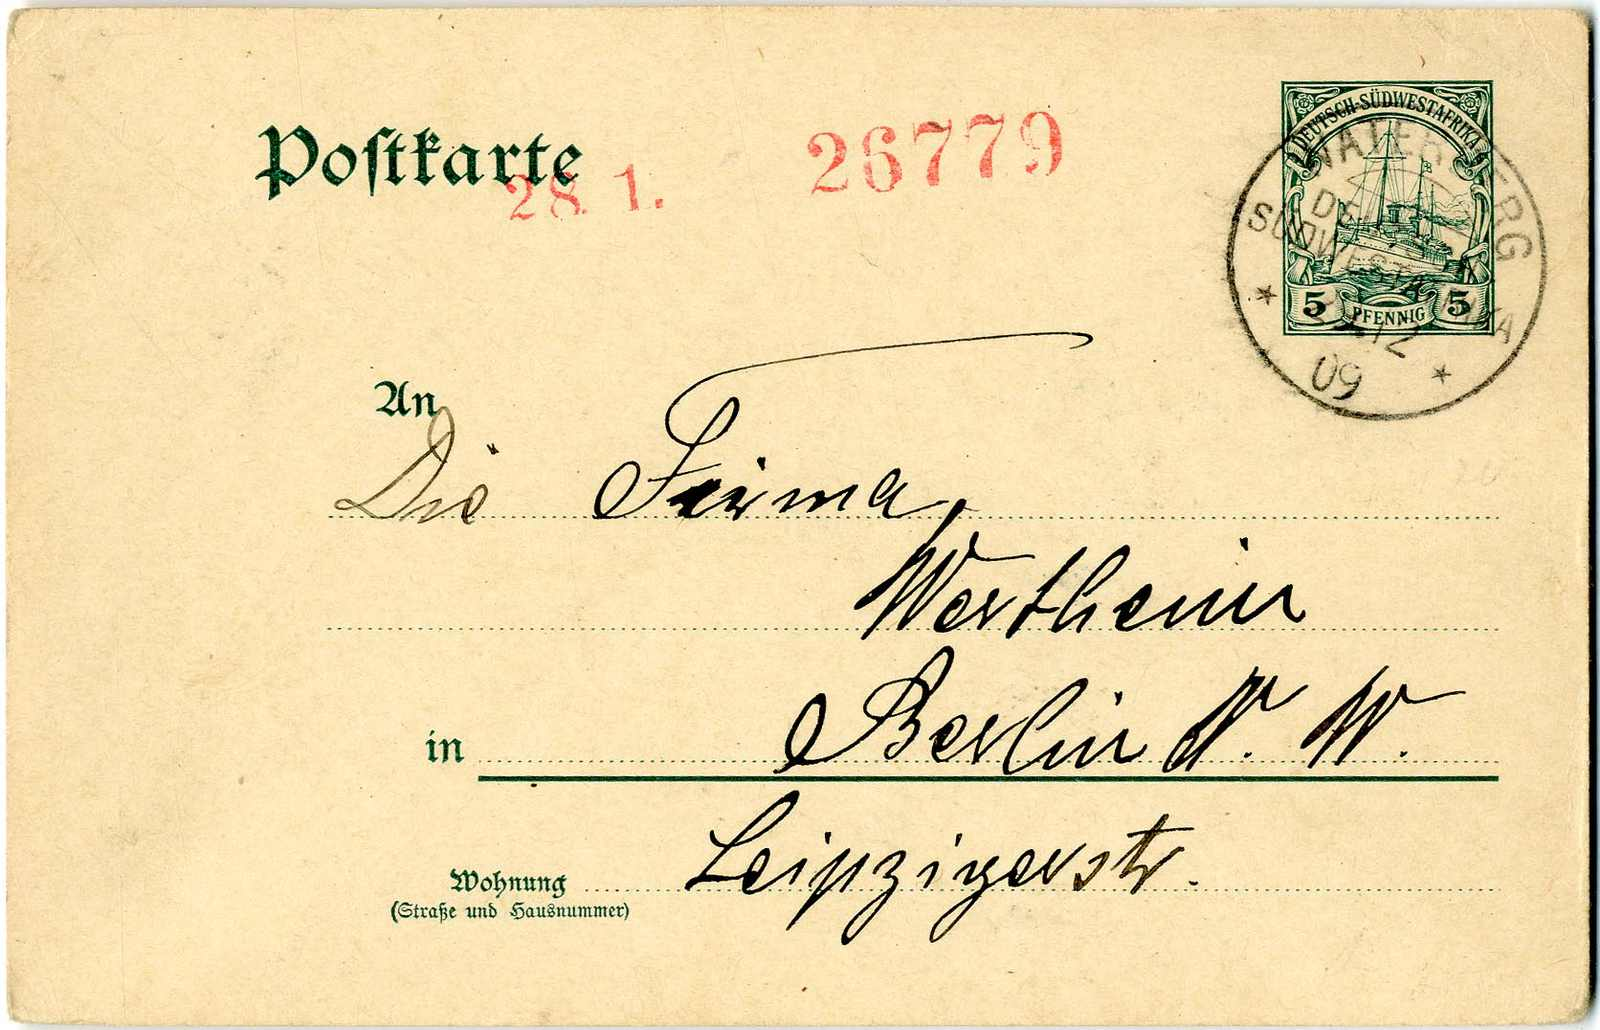 Lot 1454 - Deutsche Kolonien Südwestafrika, Stempel  -  Karl Pfankuch & Co. auction #222